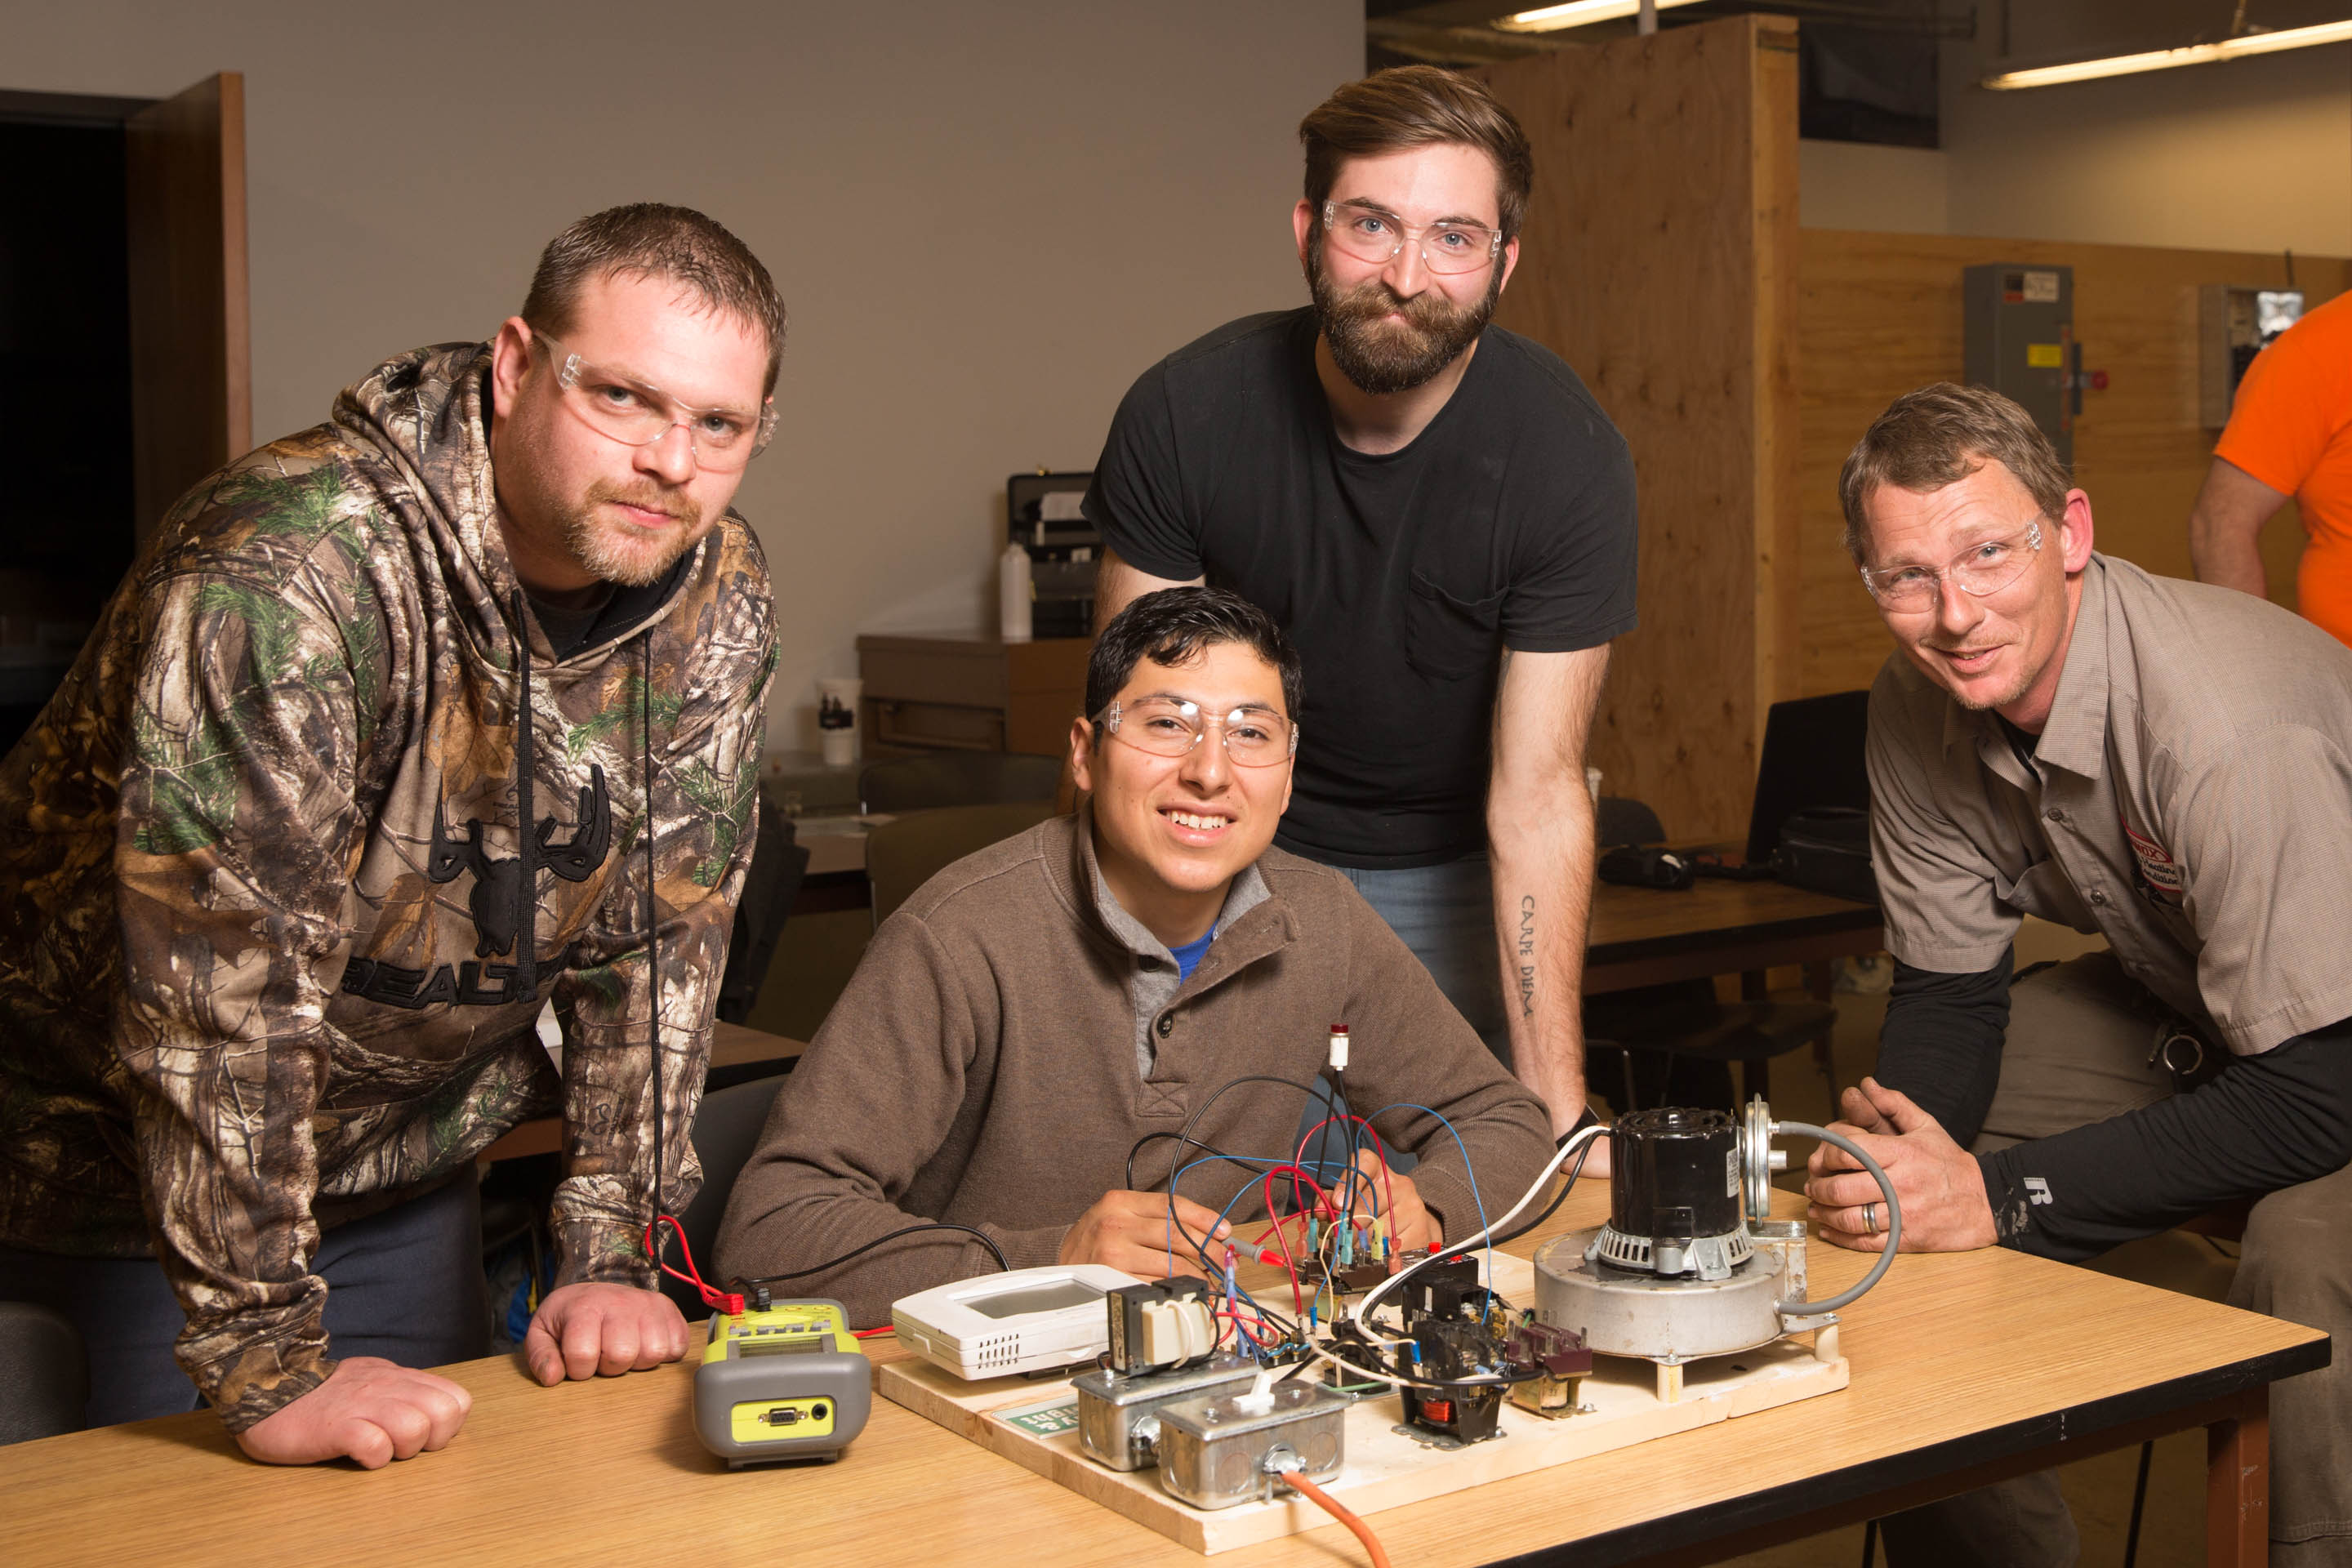 Four men working on electrical systems